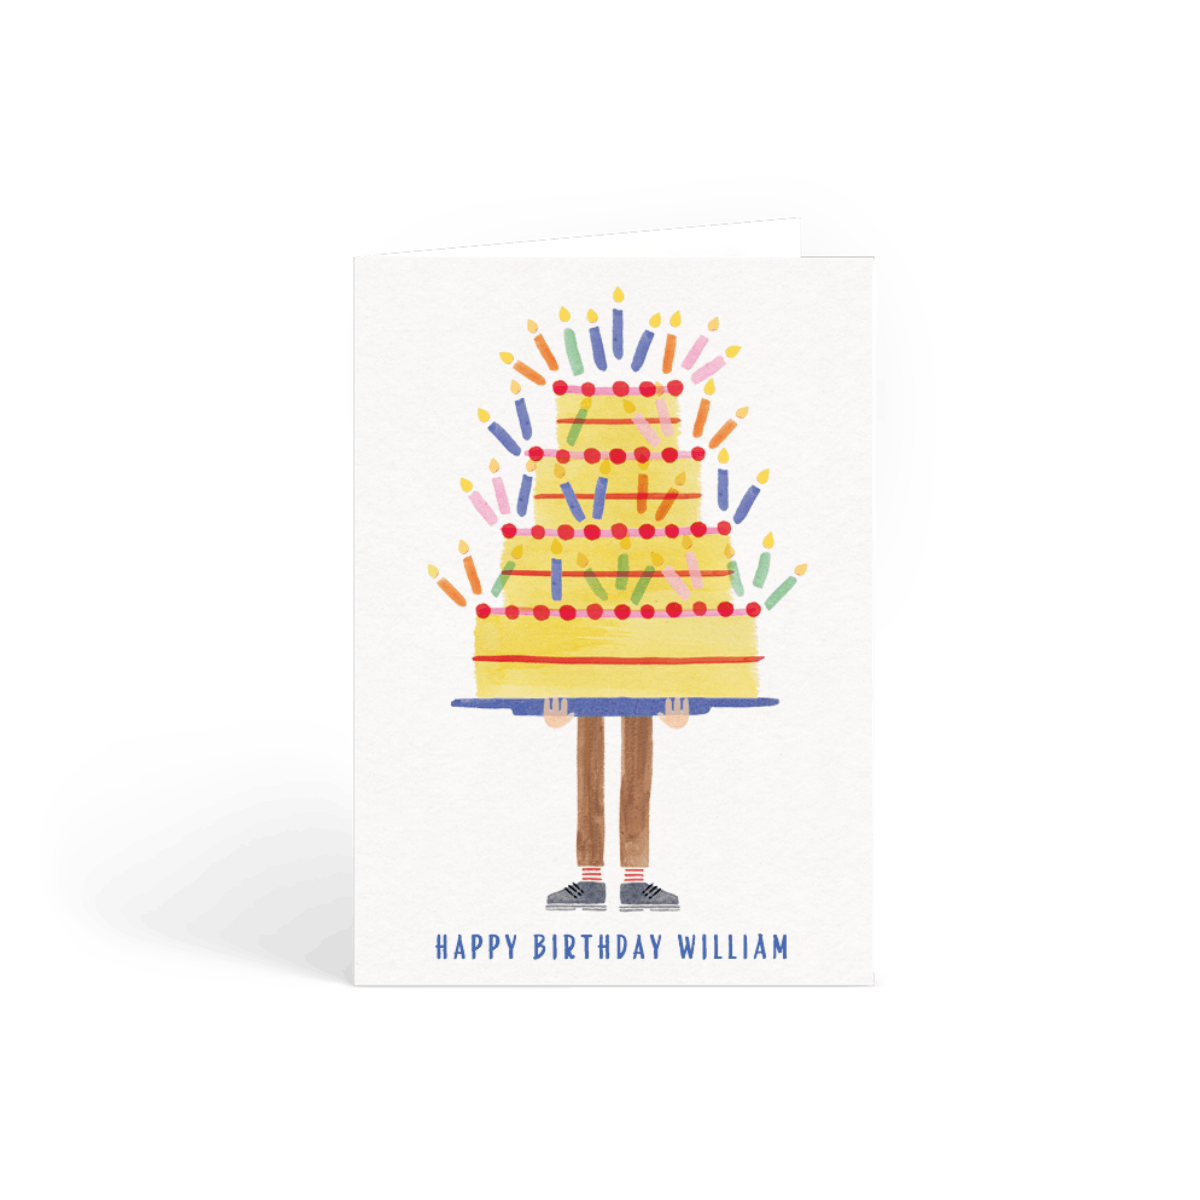 Https%3a%2f%2fwww.papier.com%2fproduct image%2f1117%2f2%2fbiggest birthday cake 324 front 1453909677.png?ixlib=rb 1.1